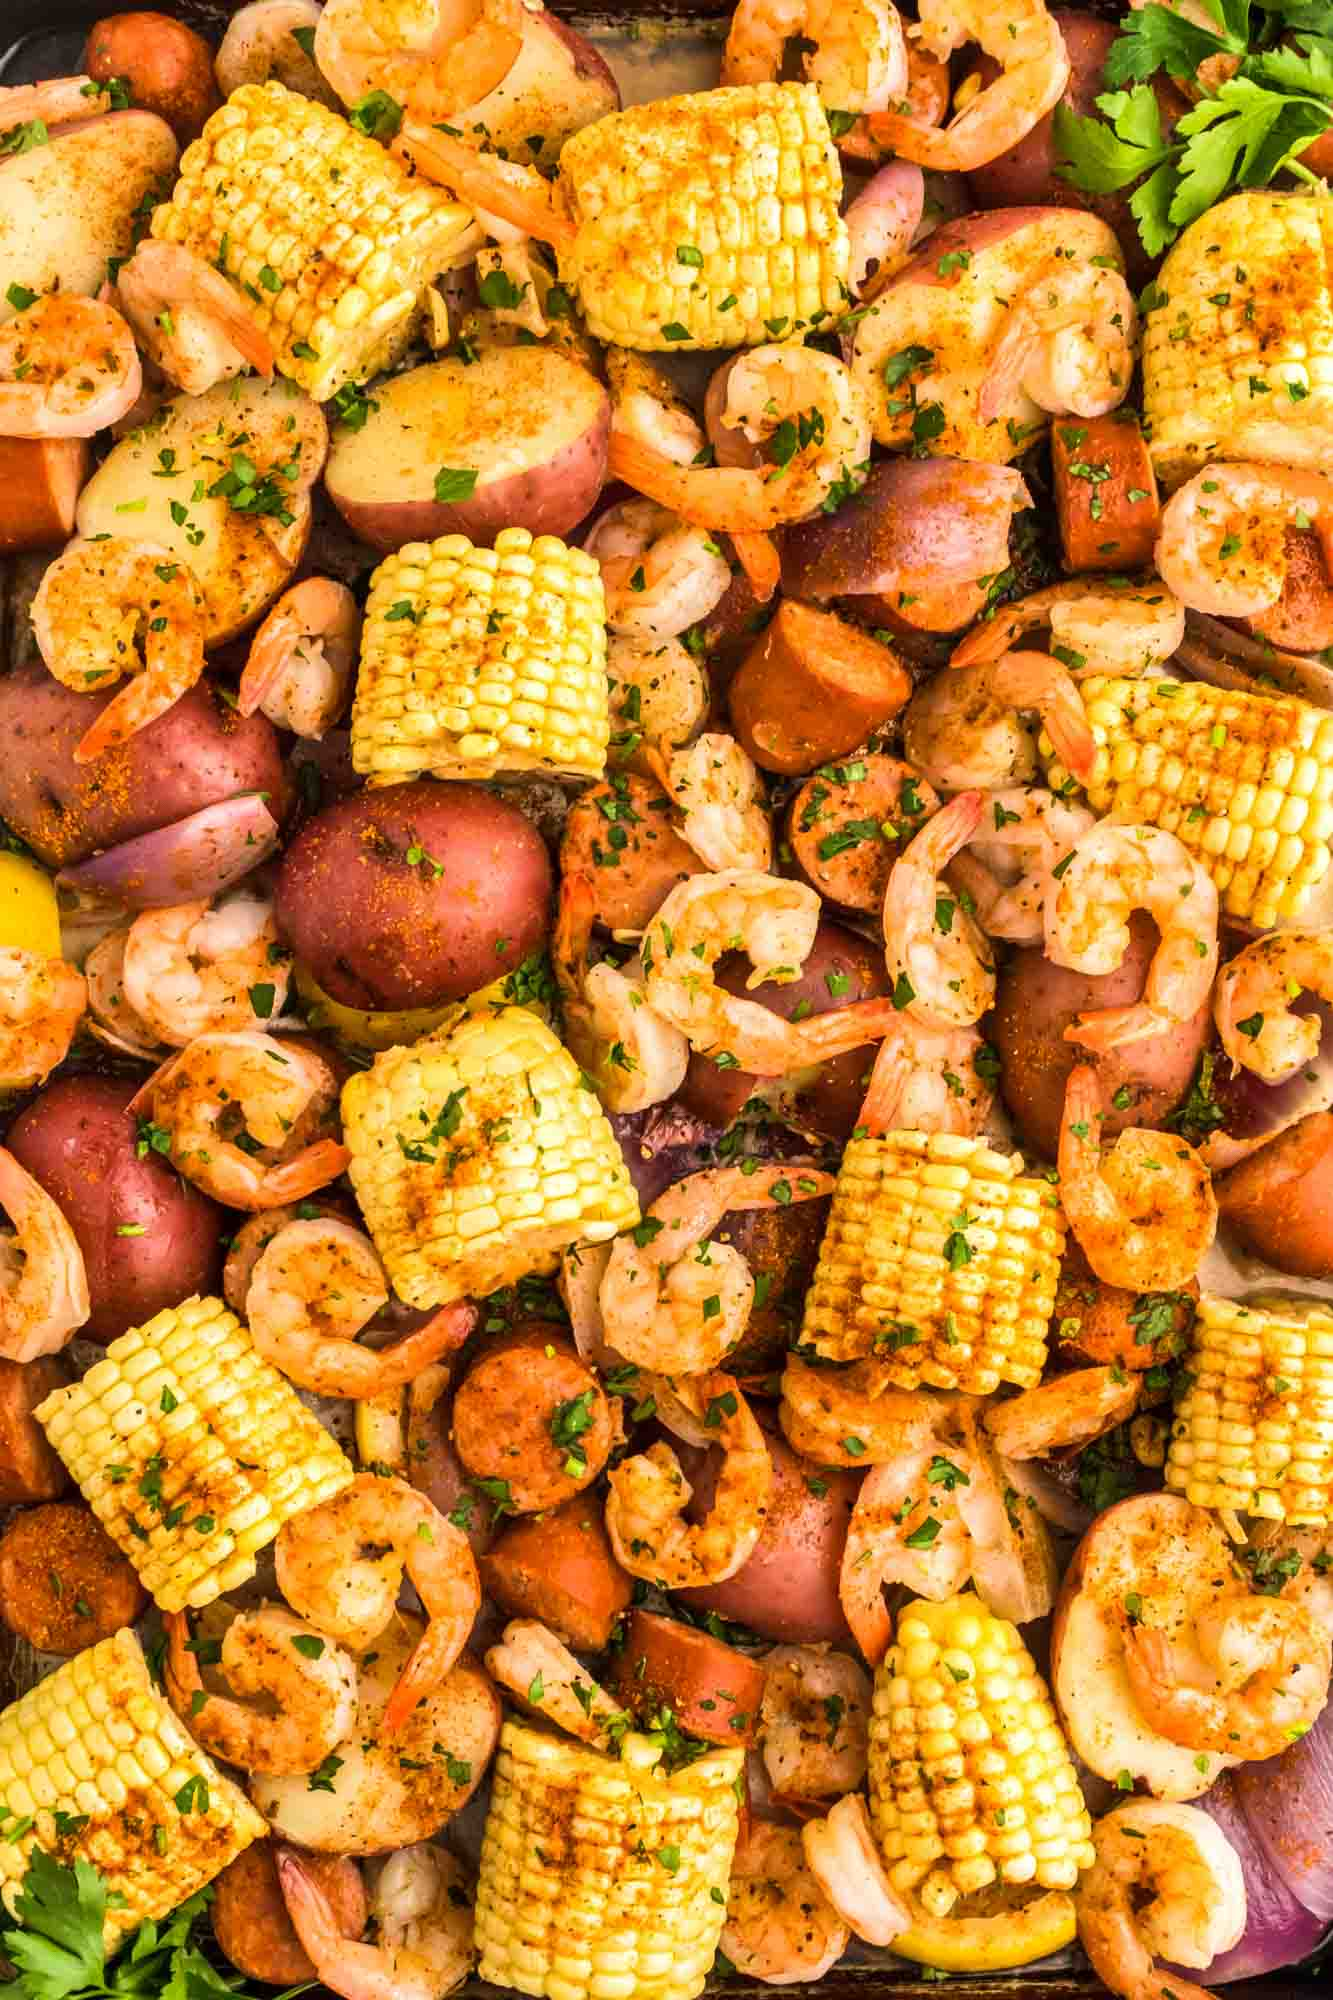 Overhead shot of shrimp boil including shrimp, corn, red potatoes, and onion. Served in a large sheet pan.